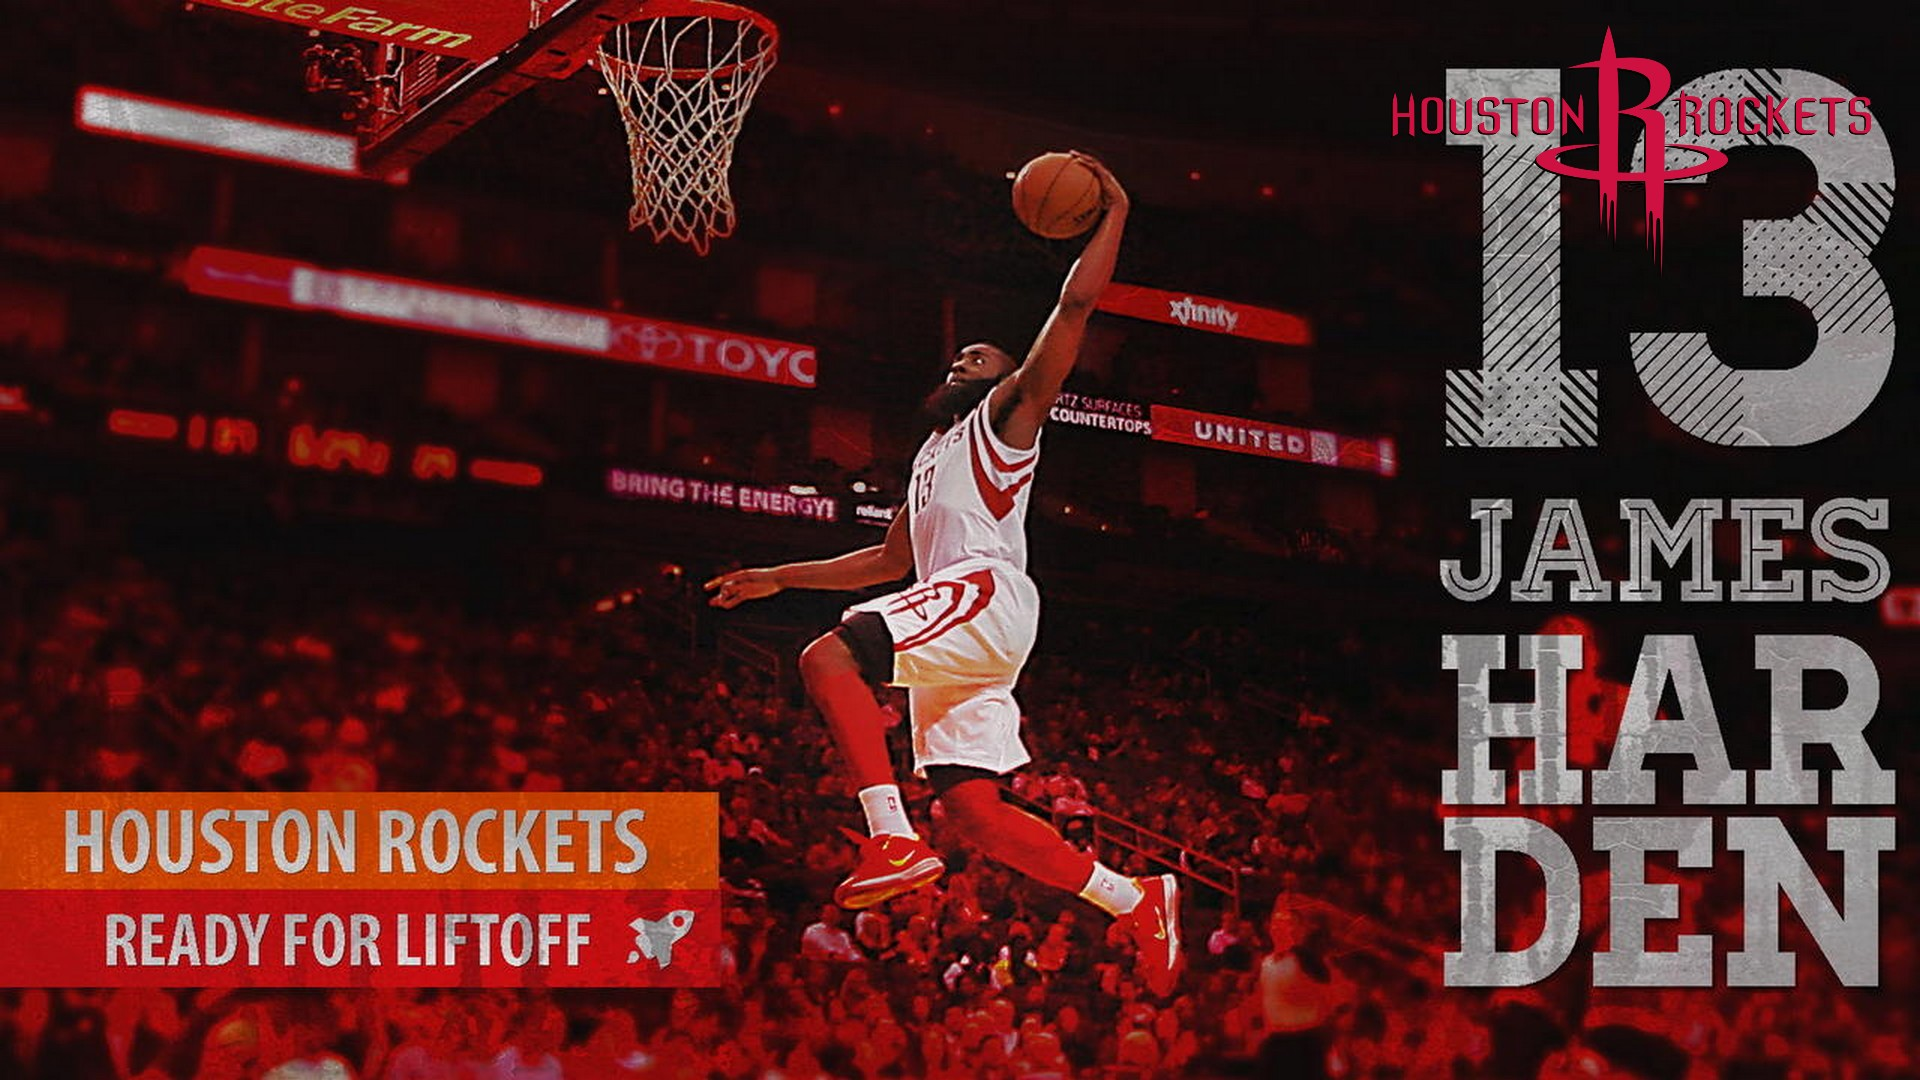 James Harden Wallpaper with image dimensions 1920x1080 pixel. You can make this wallpaper for your Desktop Computer Backgrounds, Windows or Mac Screensavers, iPhone Lock screen, Tablet or Android and another Mobile Phone device